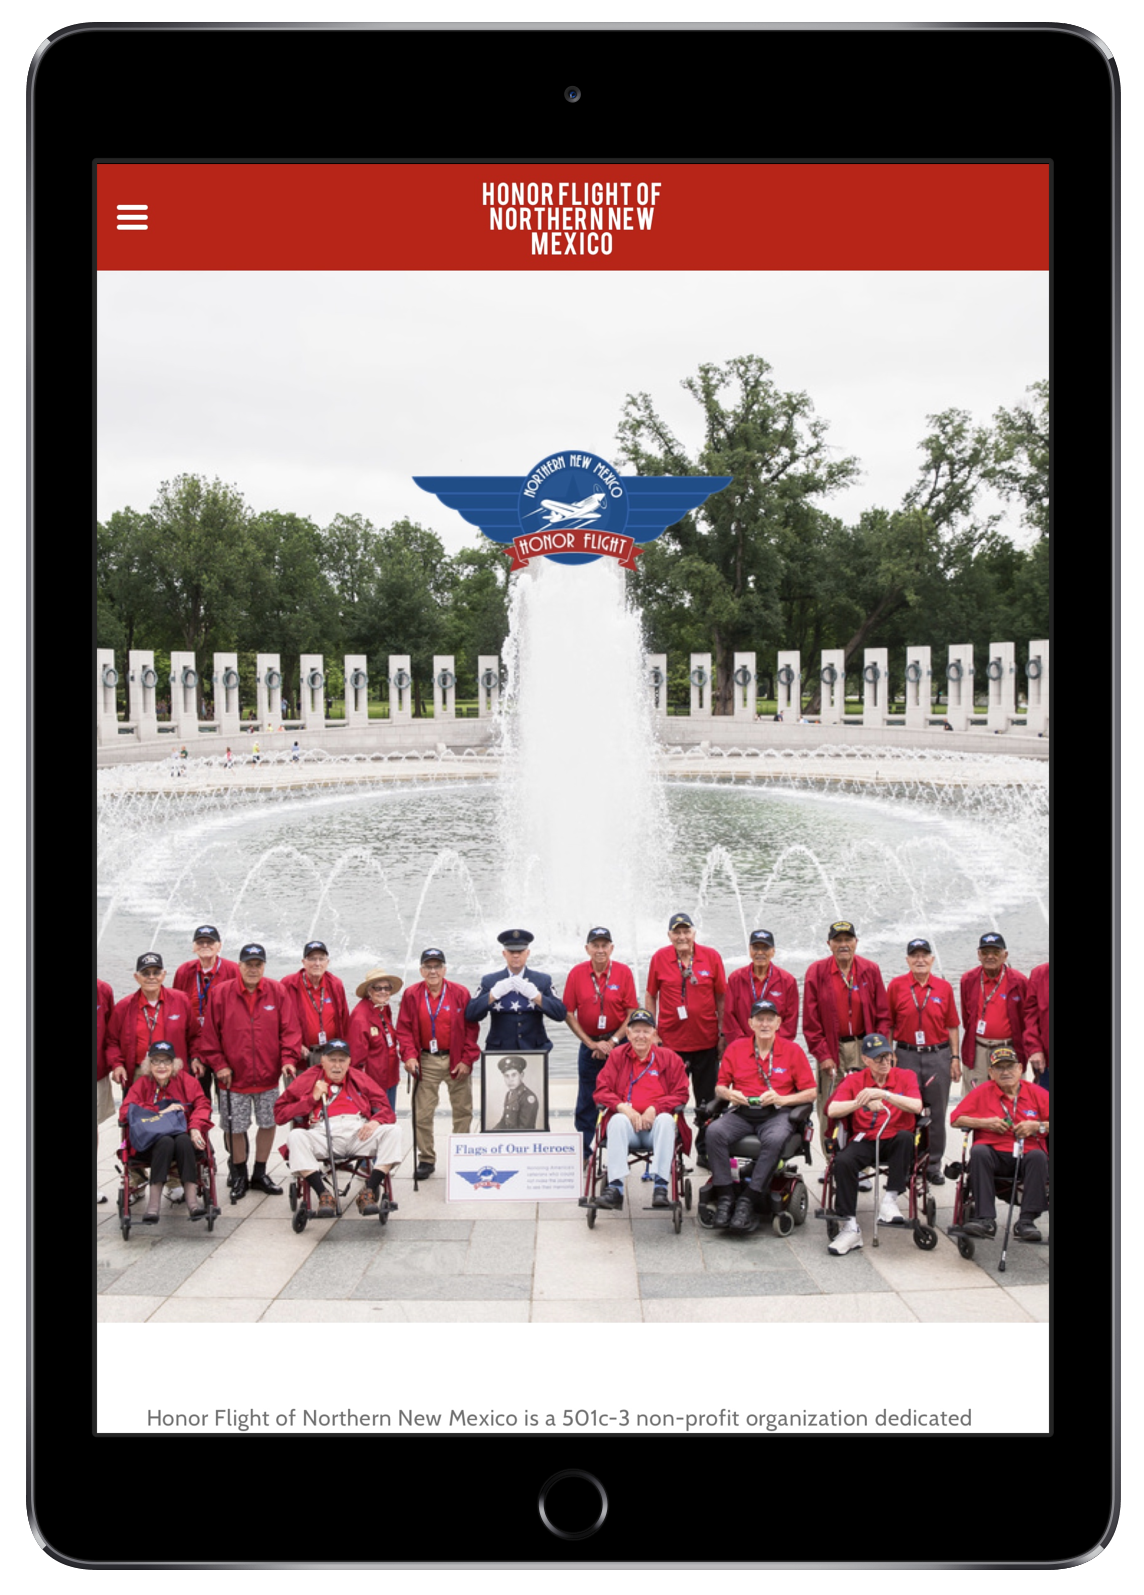 Honor Flight of Northern New Mexico (iPad)